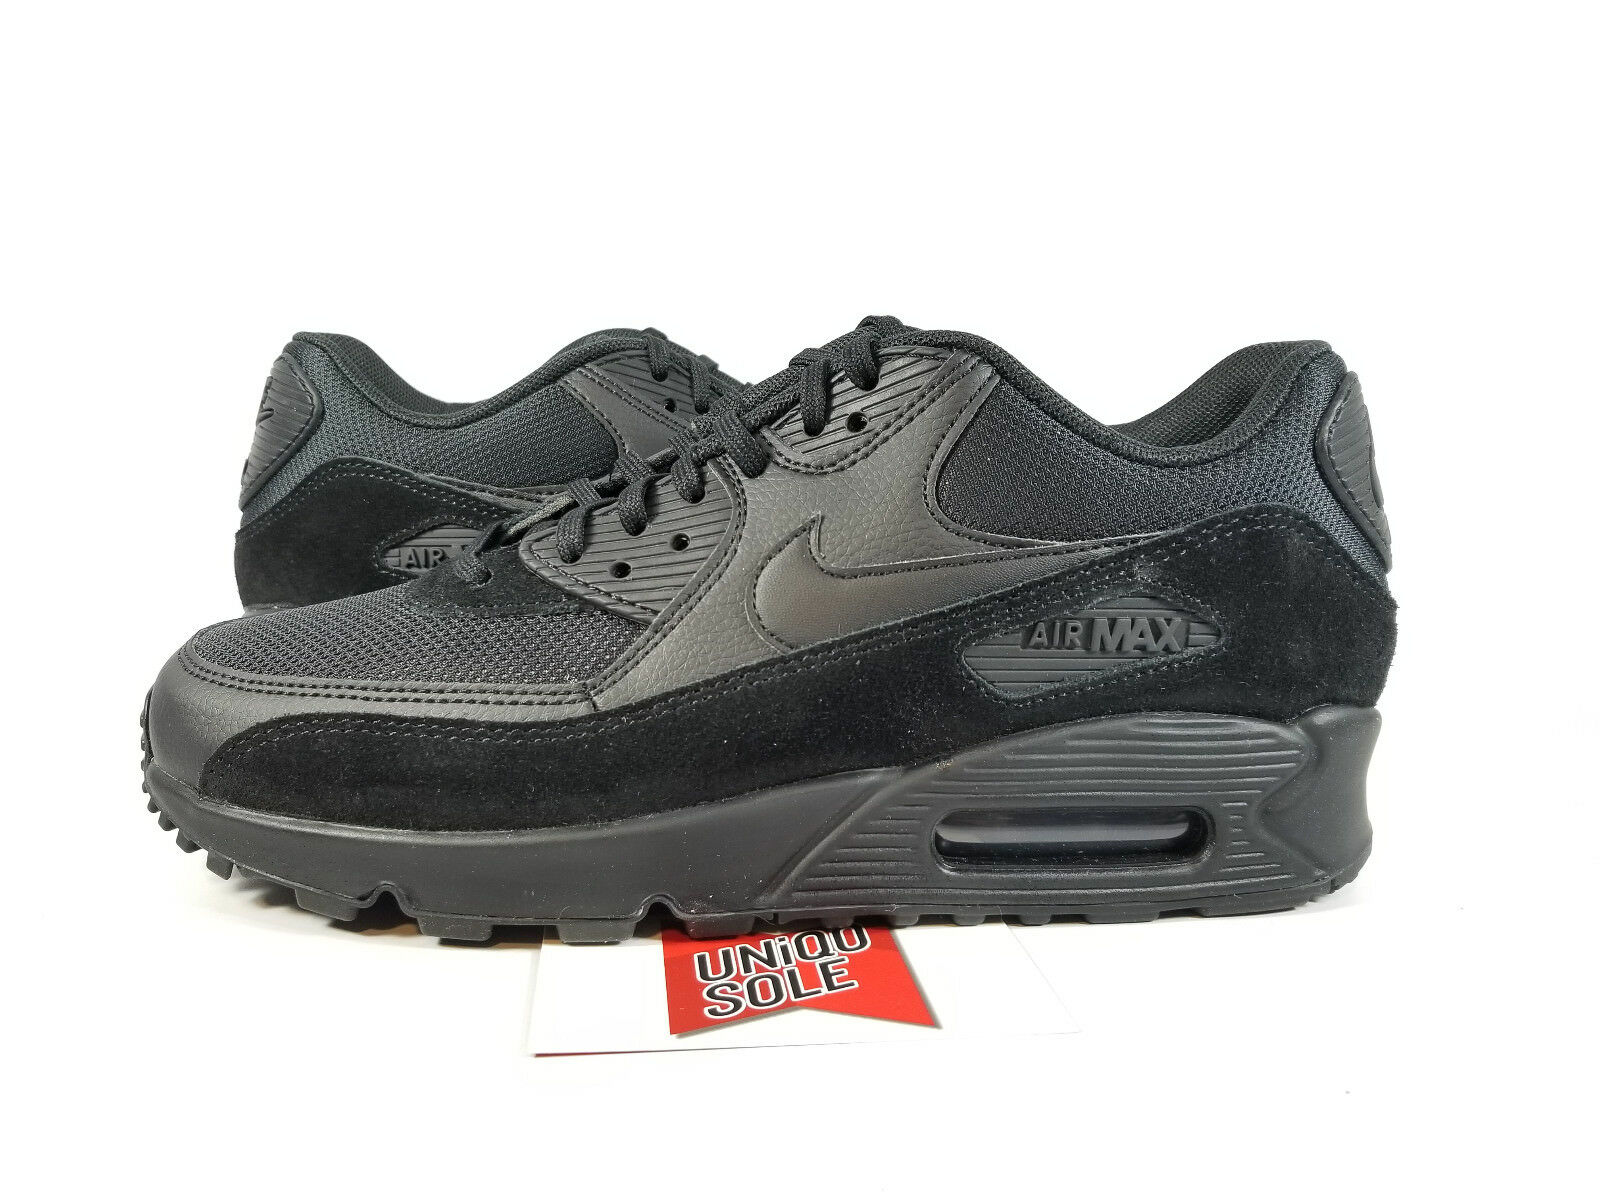 Nike Women's Air Max 90 TRIPLE BLACK SUEDE LEATHER 325213-043 sz 8 day 97 plus 1